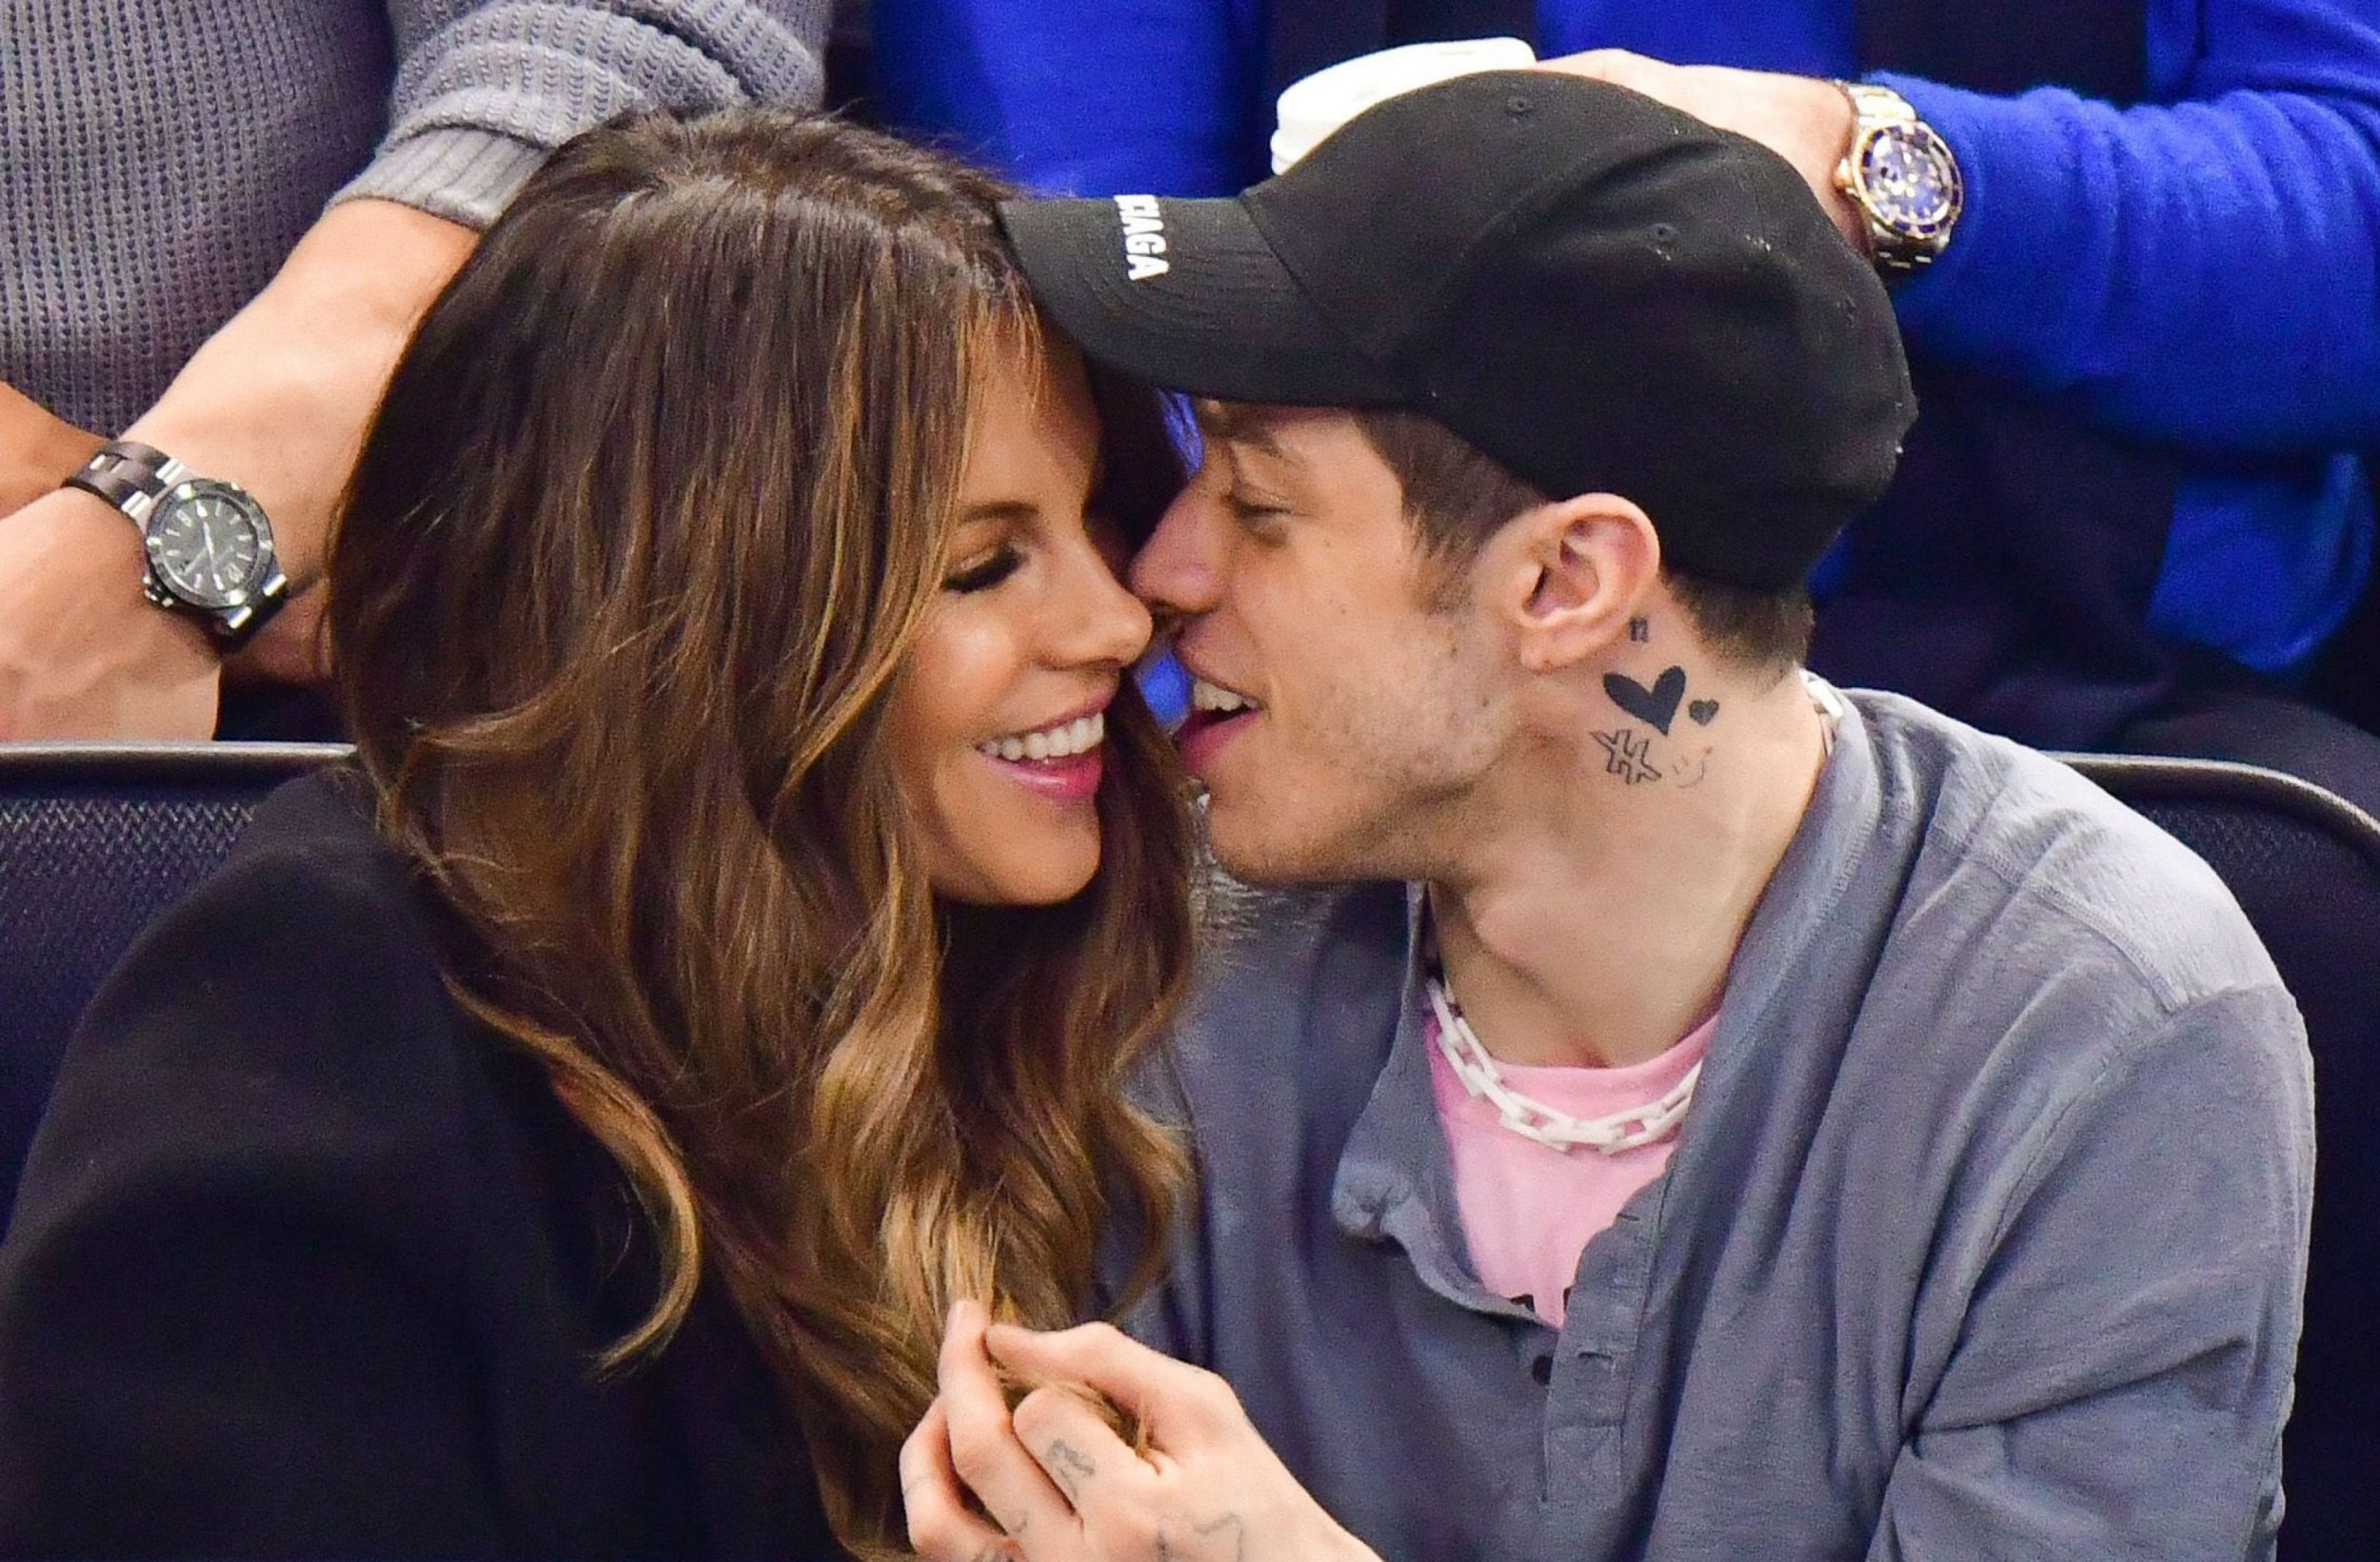 Mandatory Credit: Photo by JD Images/REX/Shutterstock (10129783bc) Kate Beckinsale and Pete Davidson Celebrities attend New York Rangers game, New York, USA - 03 Mar 2019